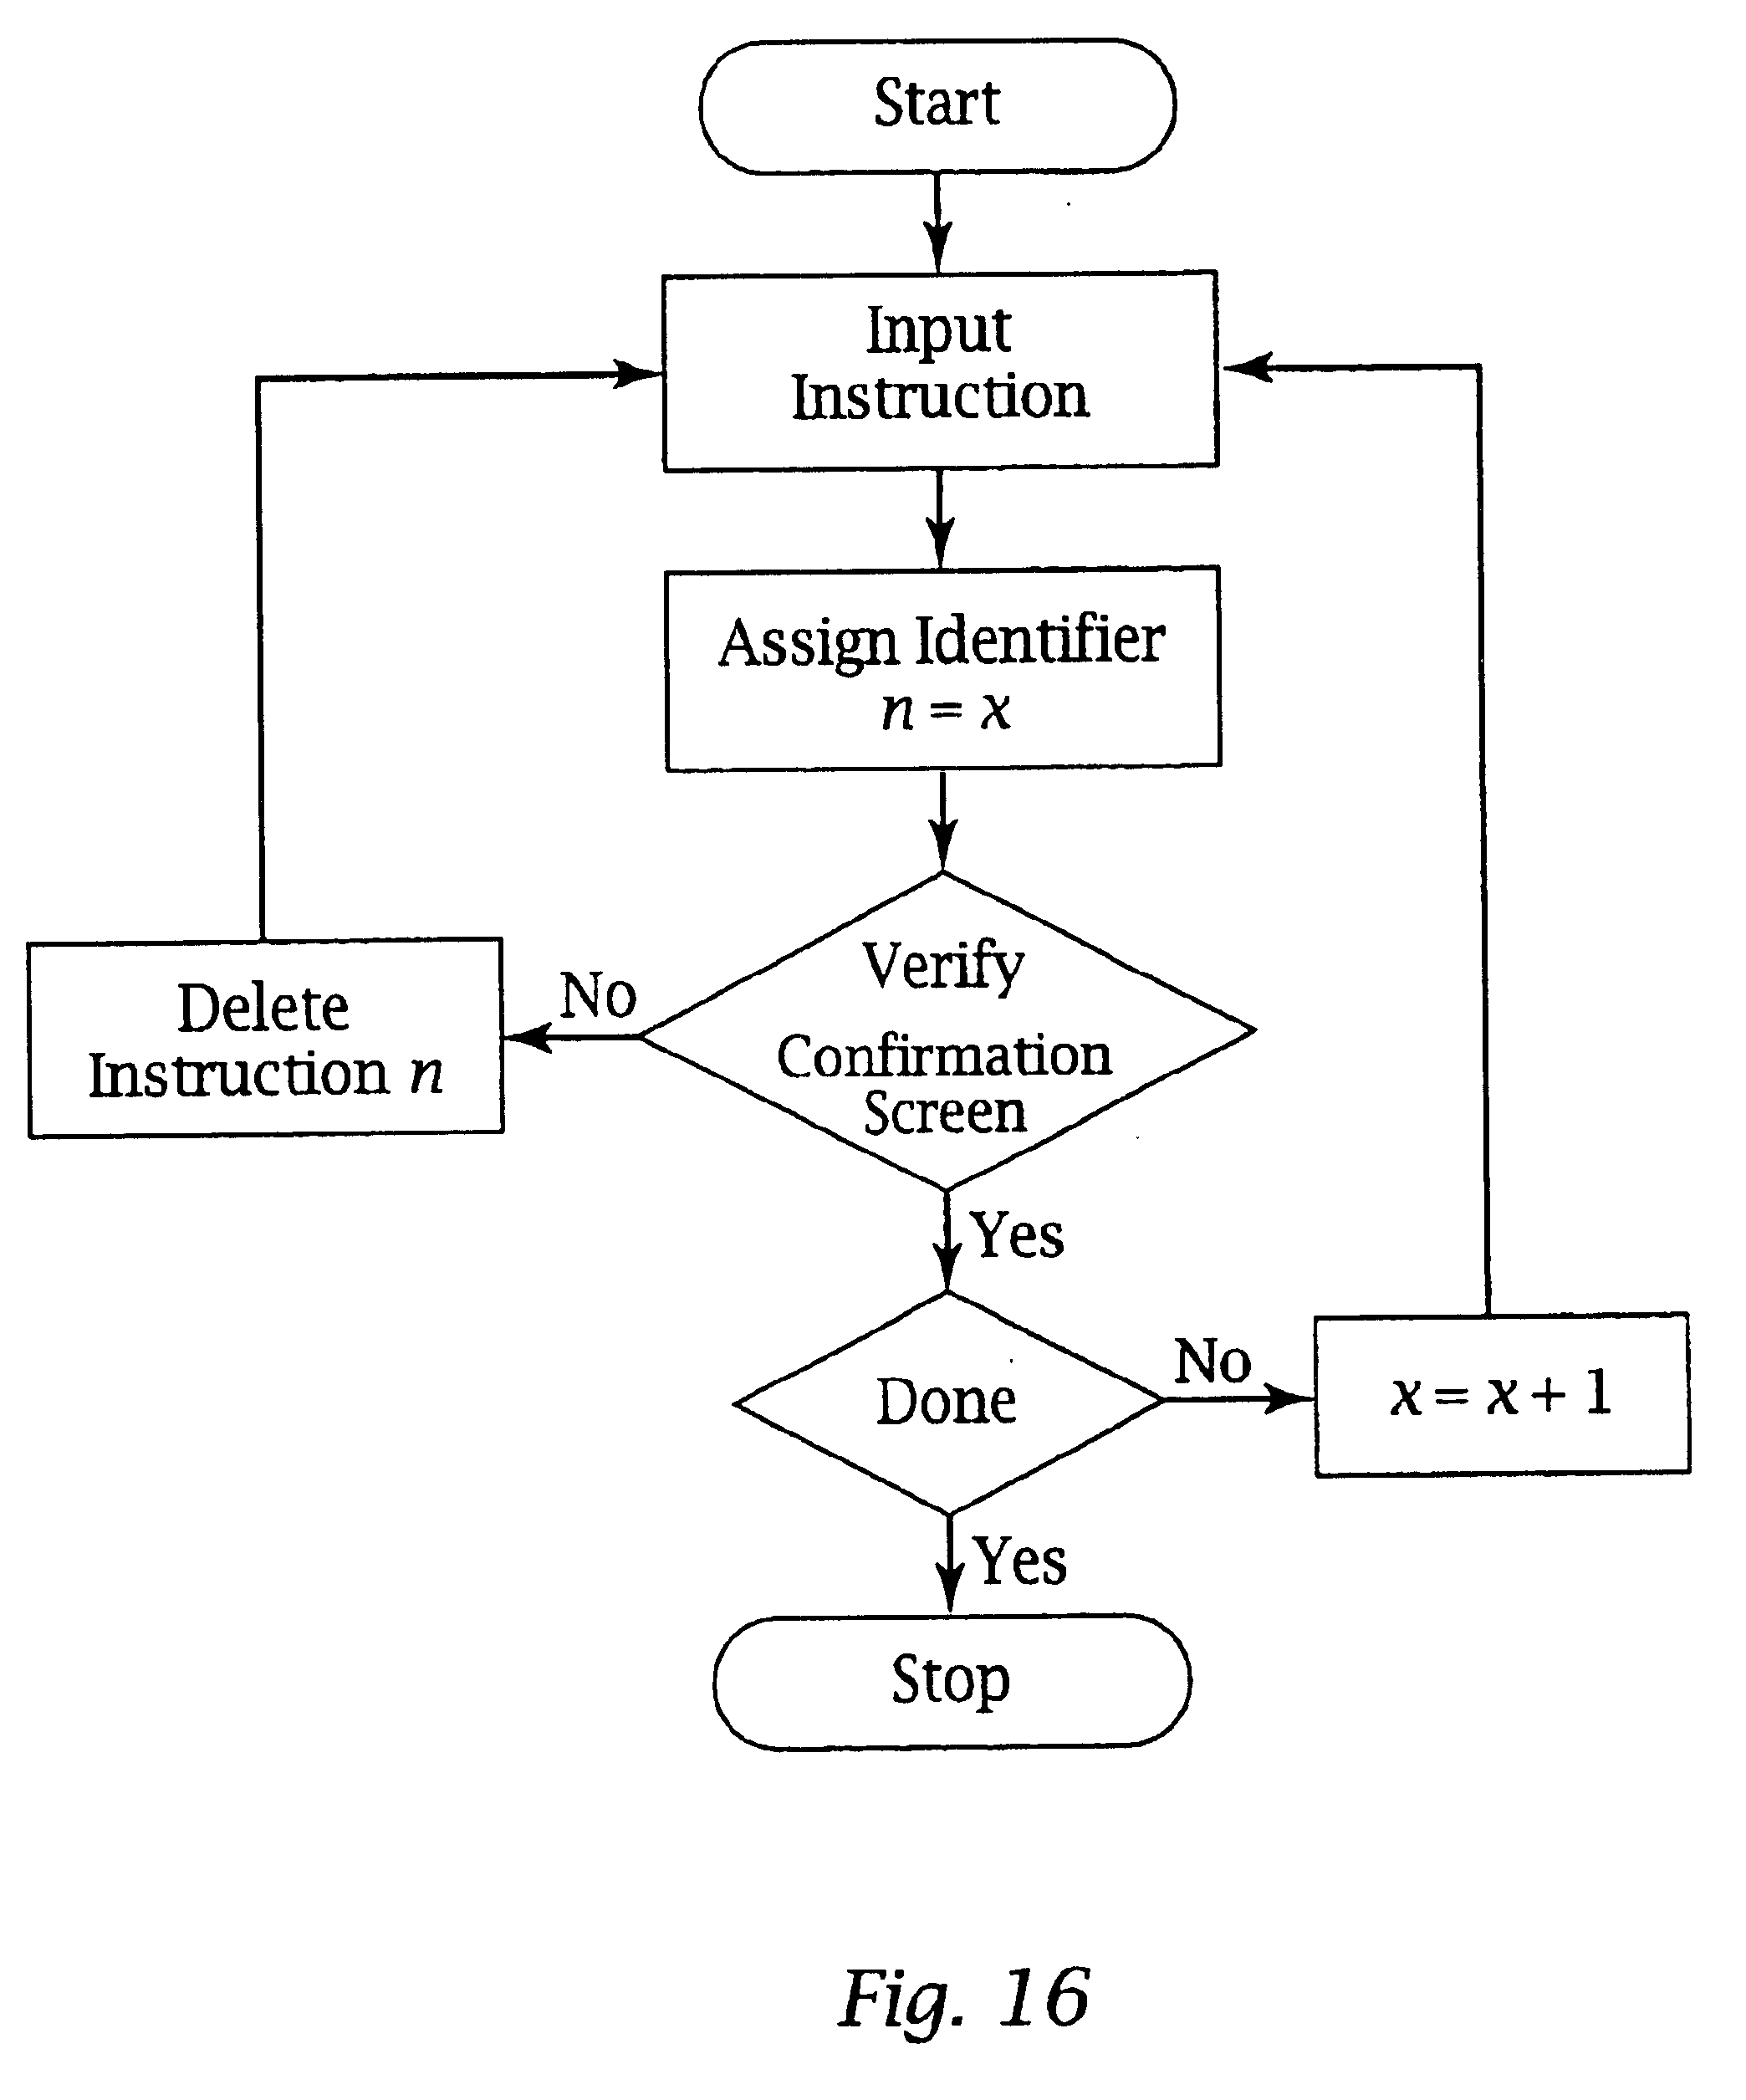 Patent Us 6850252 B1 Connecting 781 To Remote Start With Onboard Relays Gm Transponder Pk3